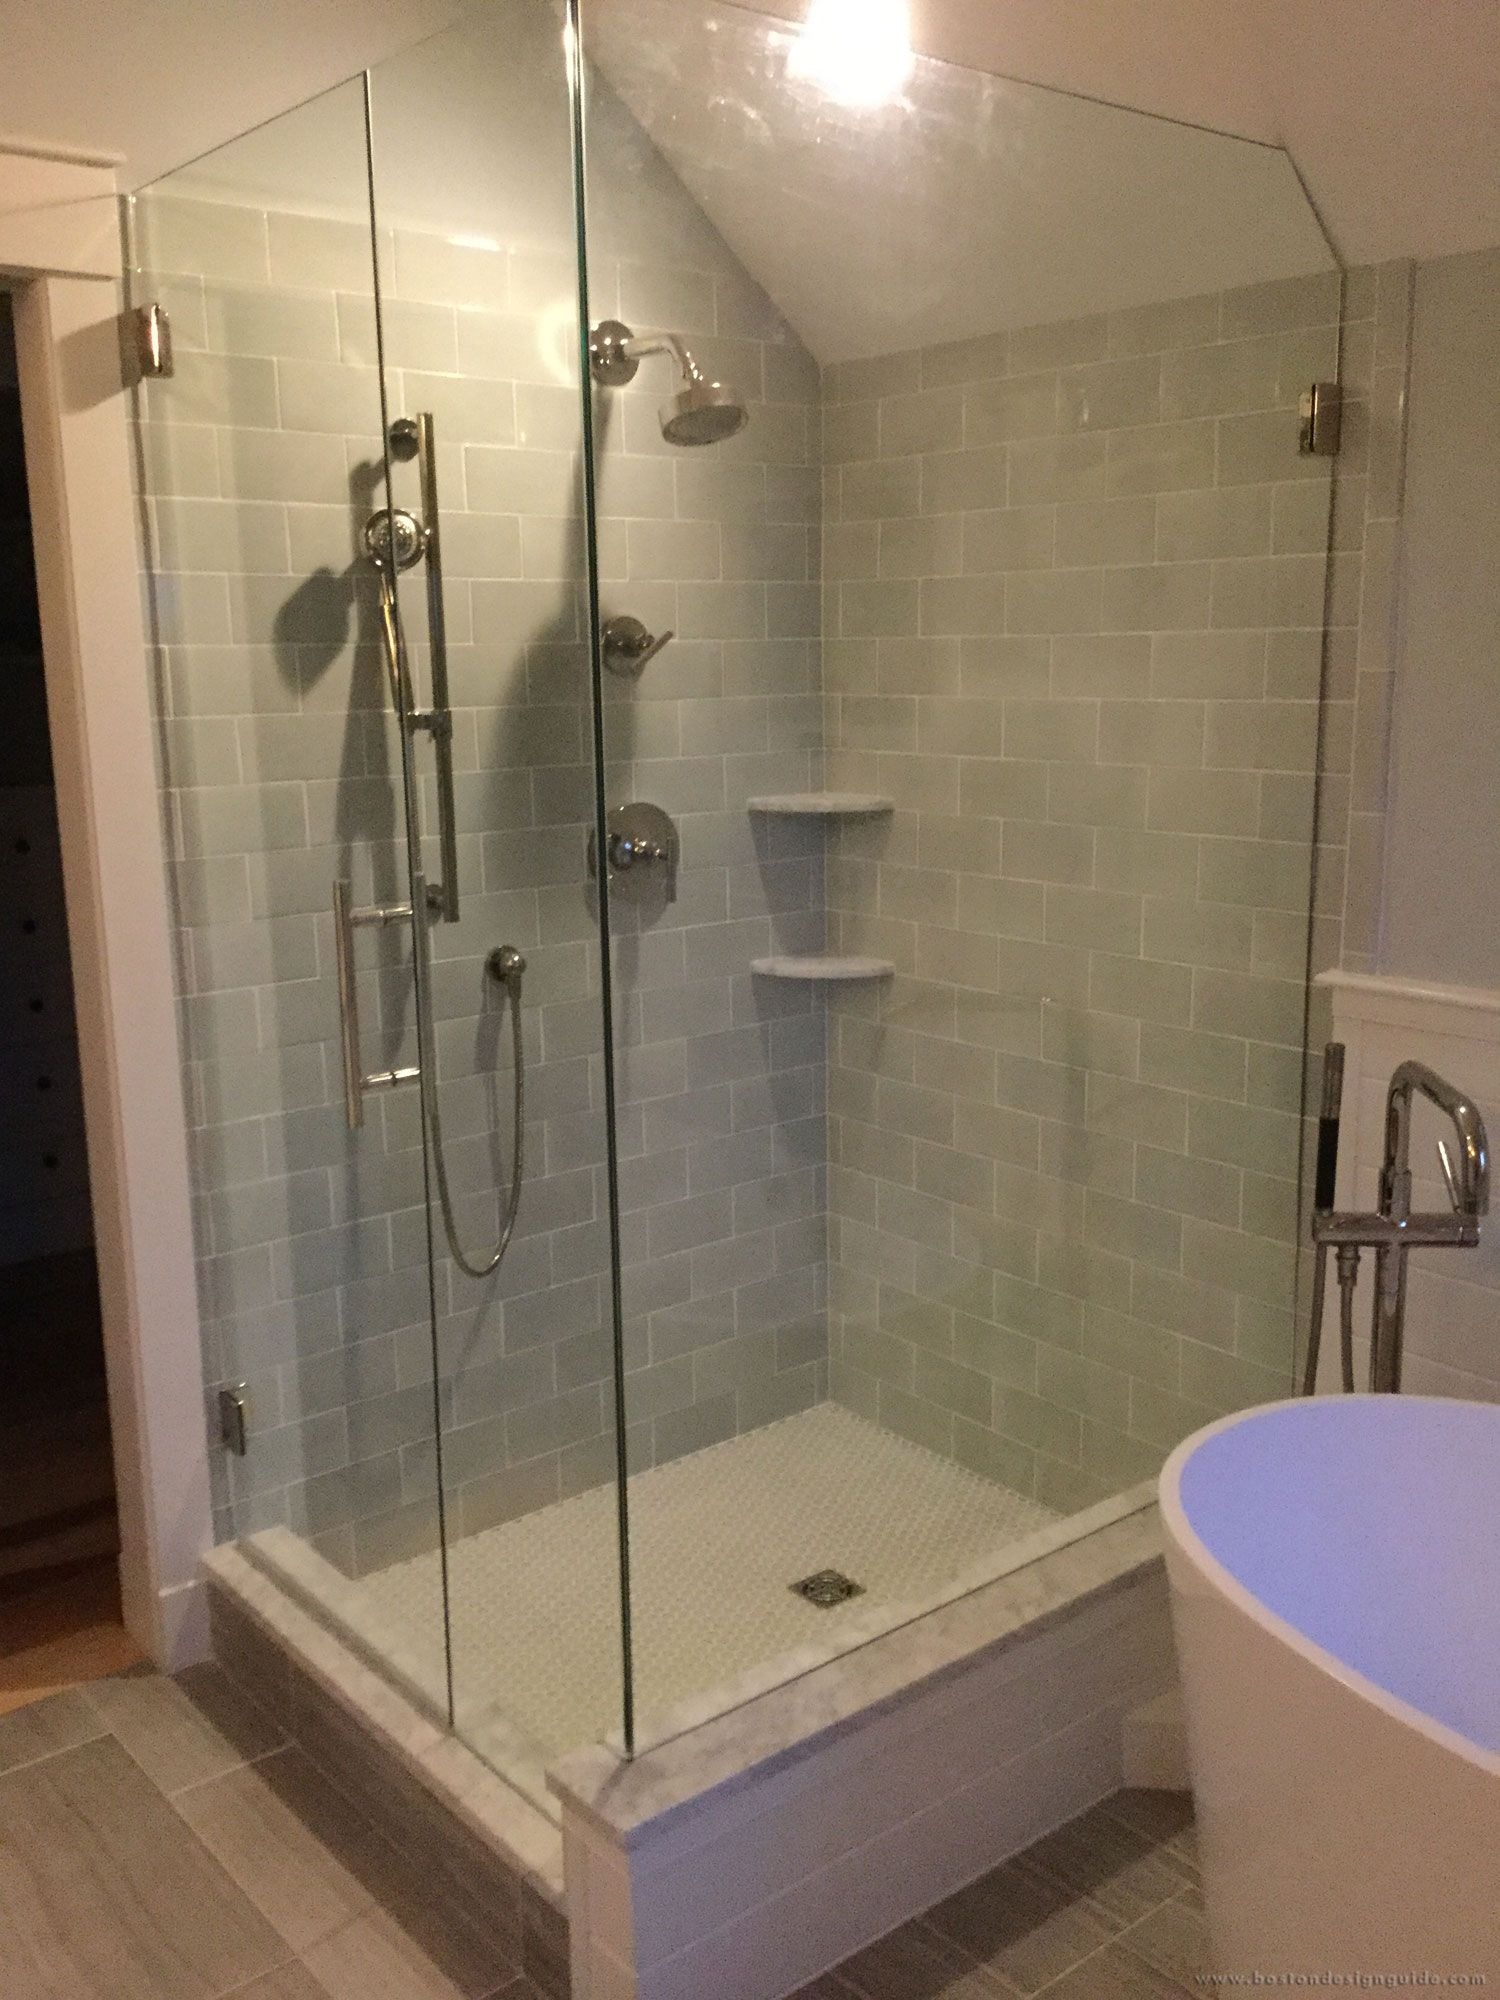 Snow And Jones Kitchen And Bath Solutions